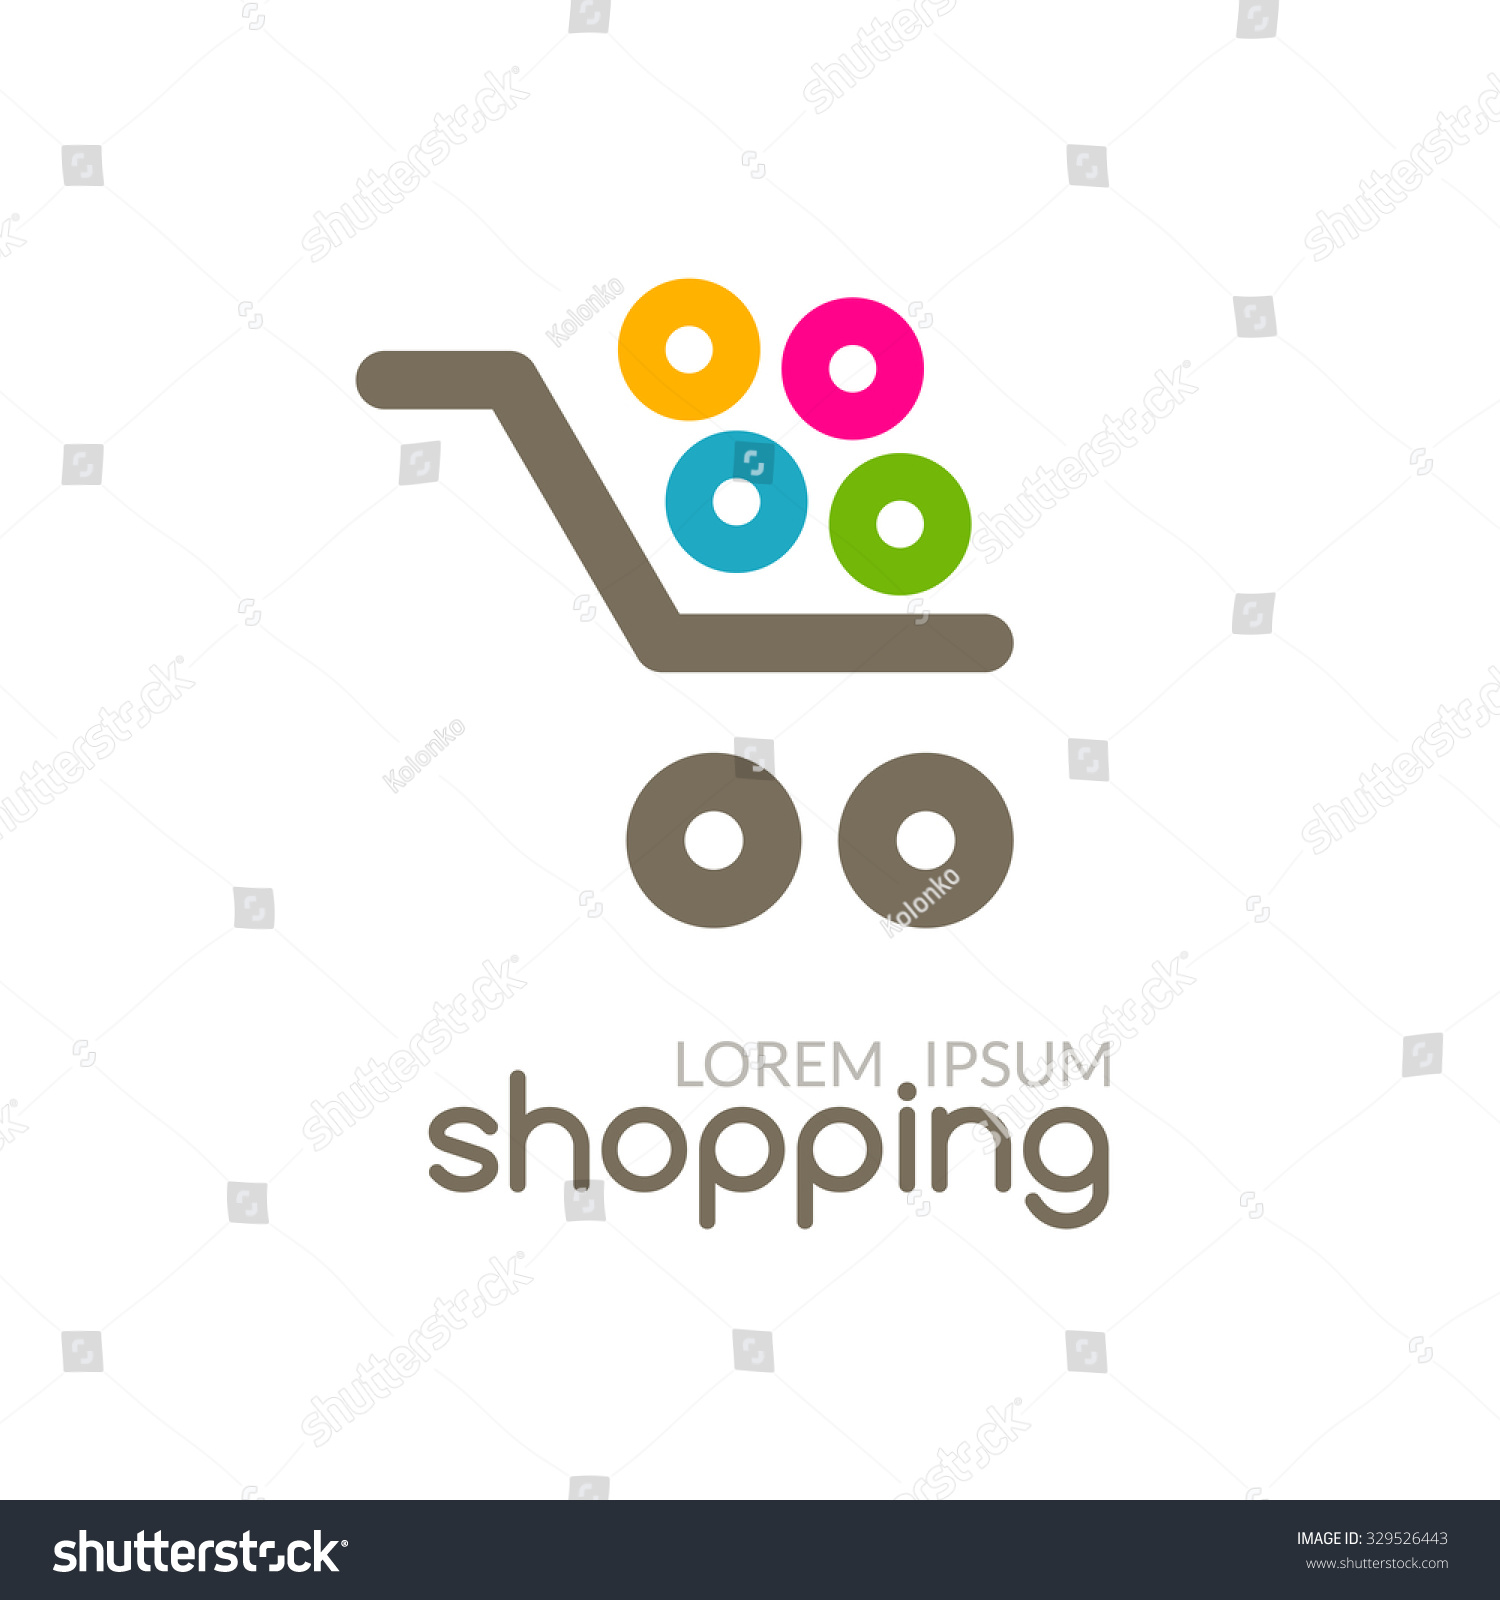 stock-vector-online-shop-mall-market-concept-cart-logo-design-vector-business-template-icon-logotype-for-store-329526443.jpg